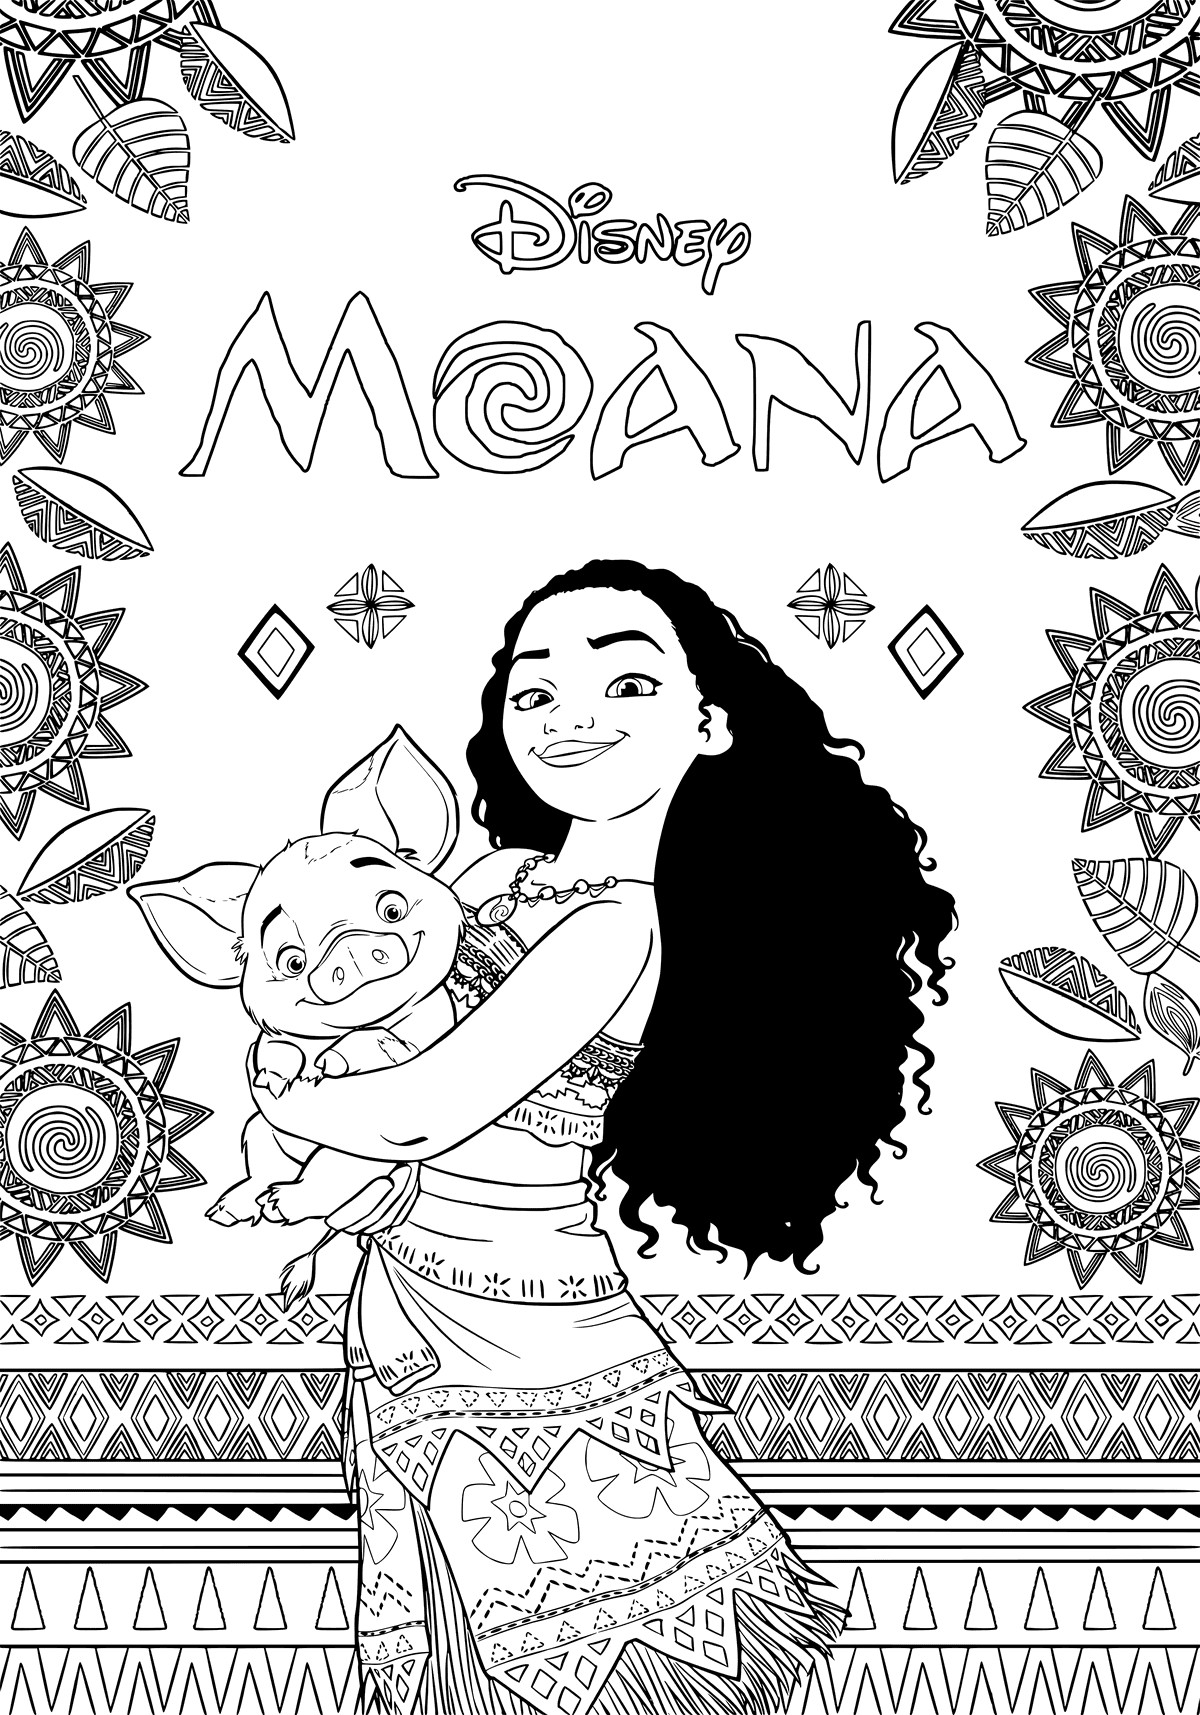 Best ideas about Moana Coloring Sheets For Girls . Save or Pin Moana Coloring Pages Best Coloring Pages For Kids Now.